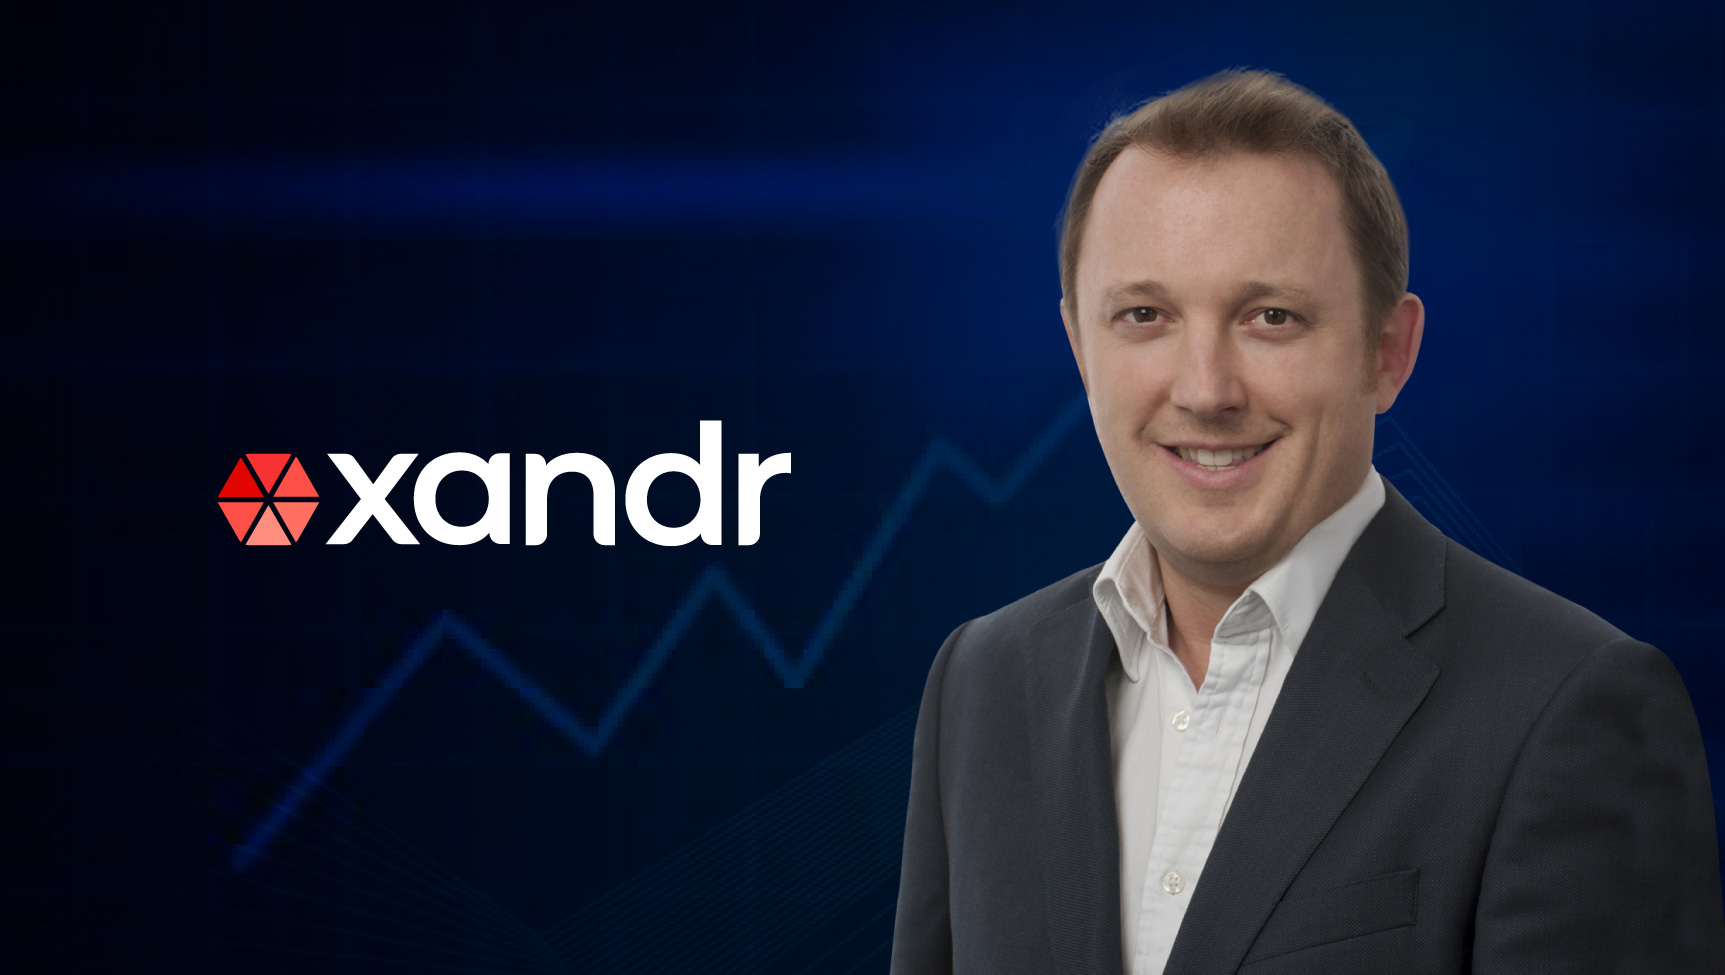 SalesTech Star Interview with Jerome Underhill, SVP EMEA, APAC and LATAM at Xandr